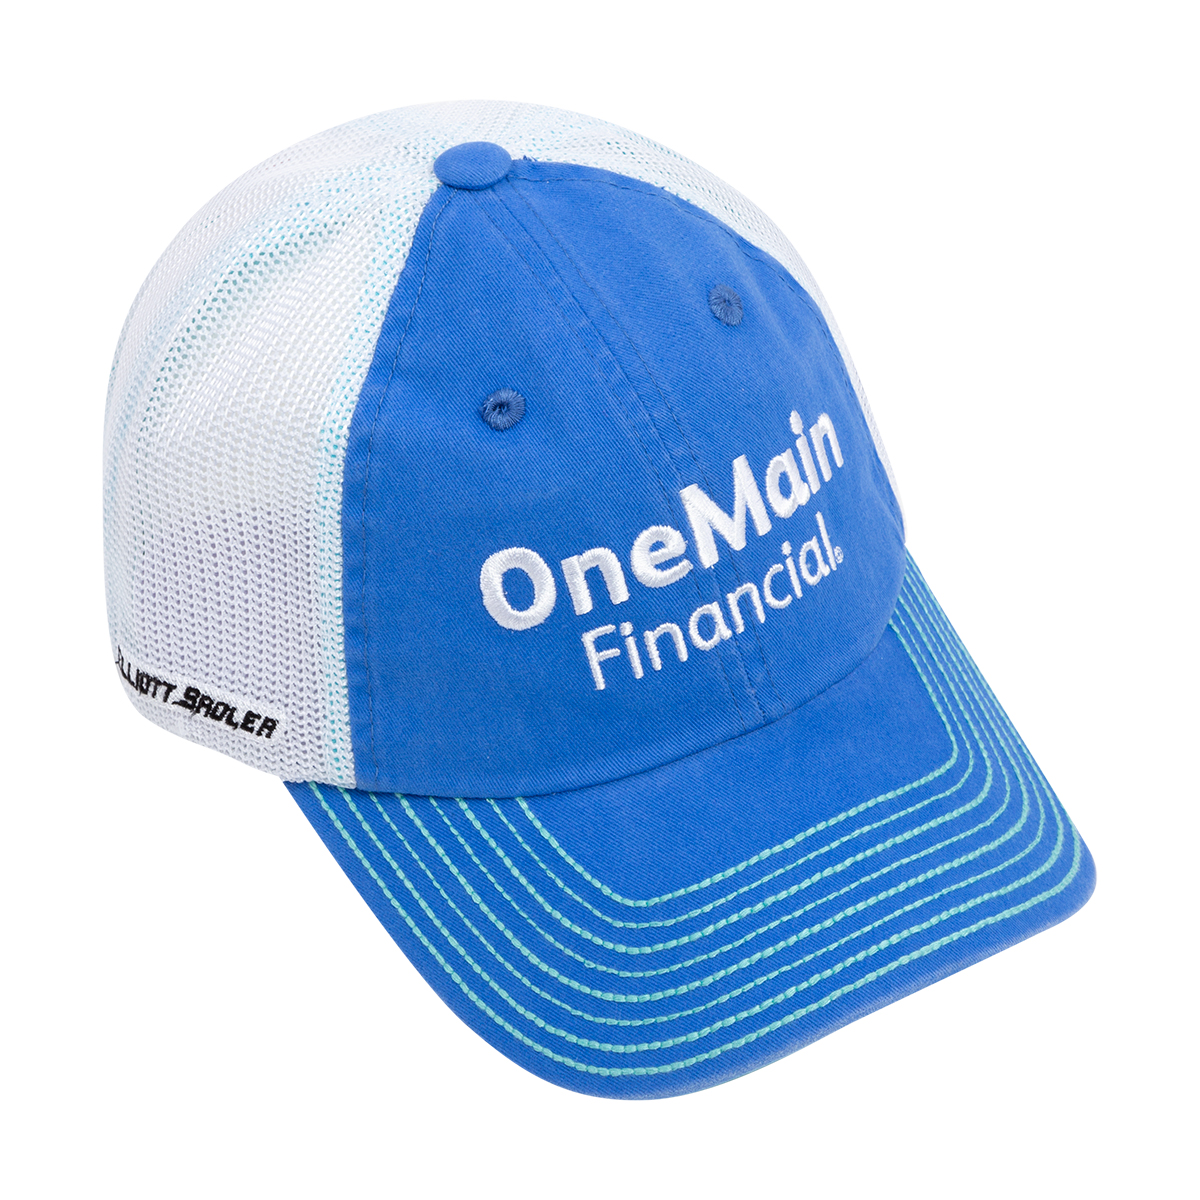 Elliott Sadler 2018 Xfinity One Main Vintage Trucker Hat